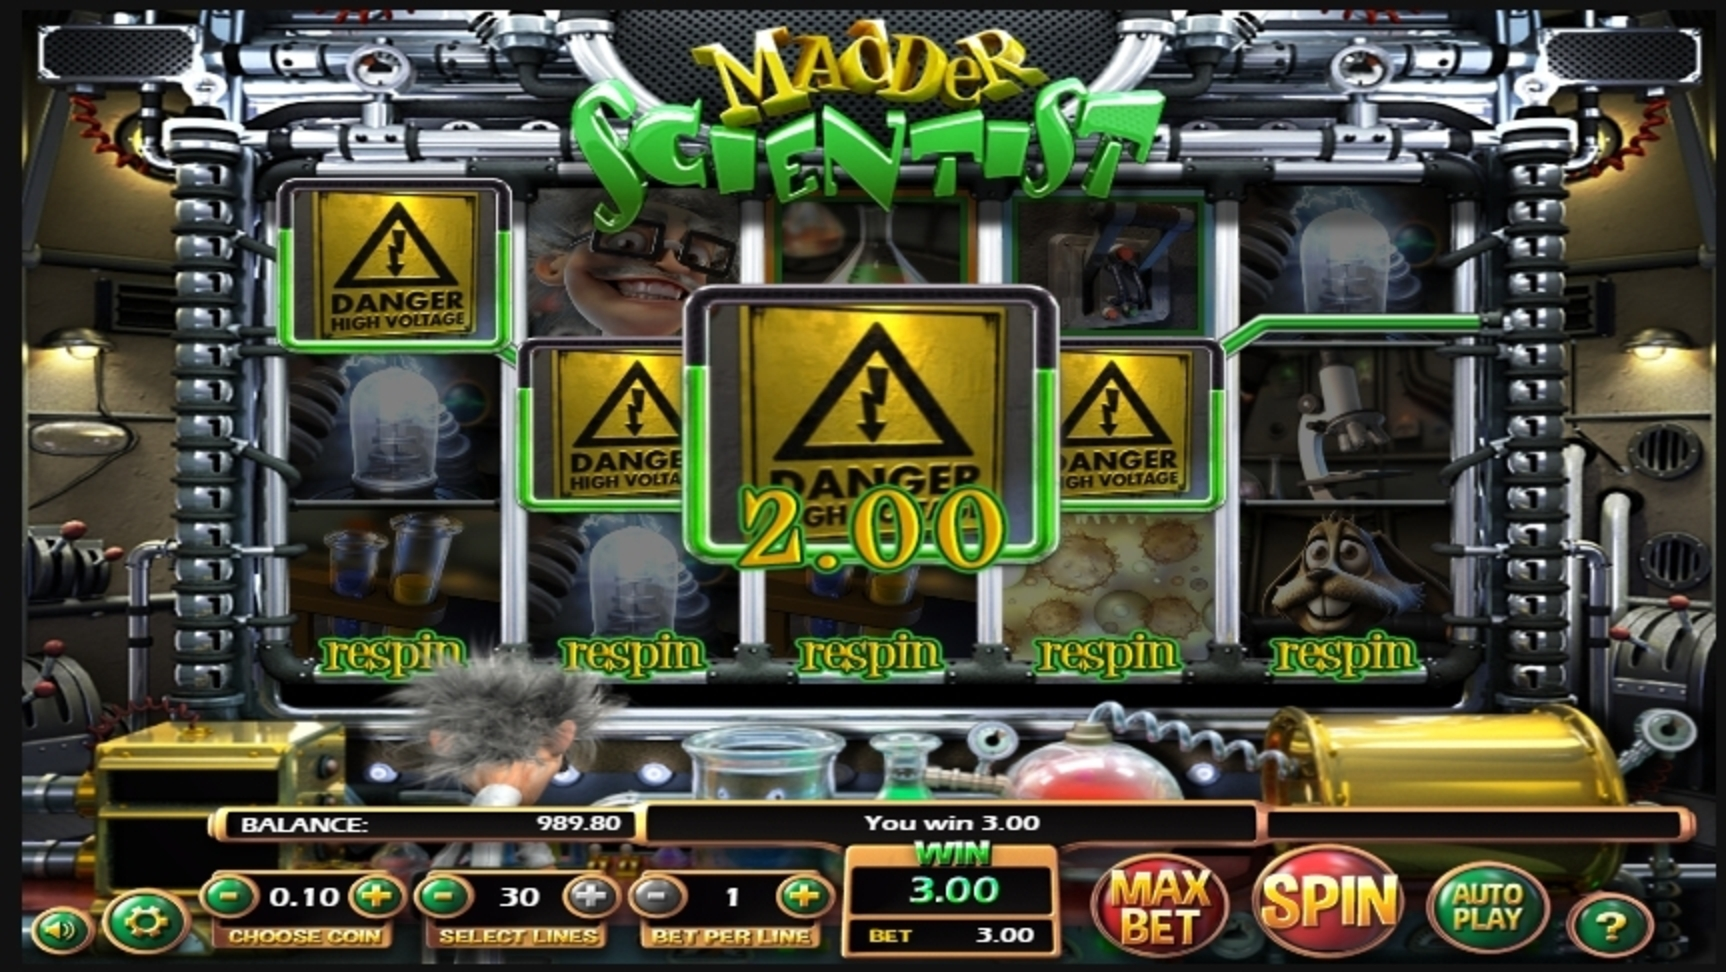 Win Money in Madder Scientist Free Slot Game by Betsoft